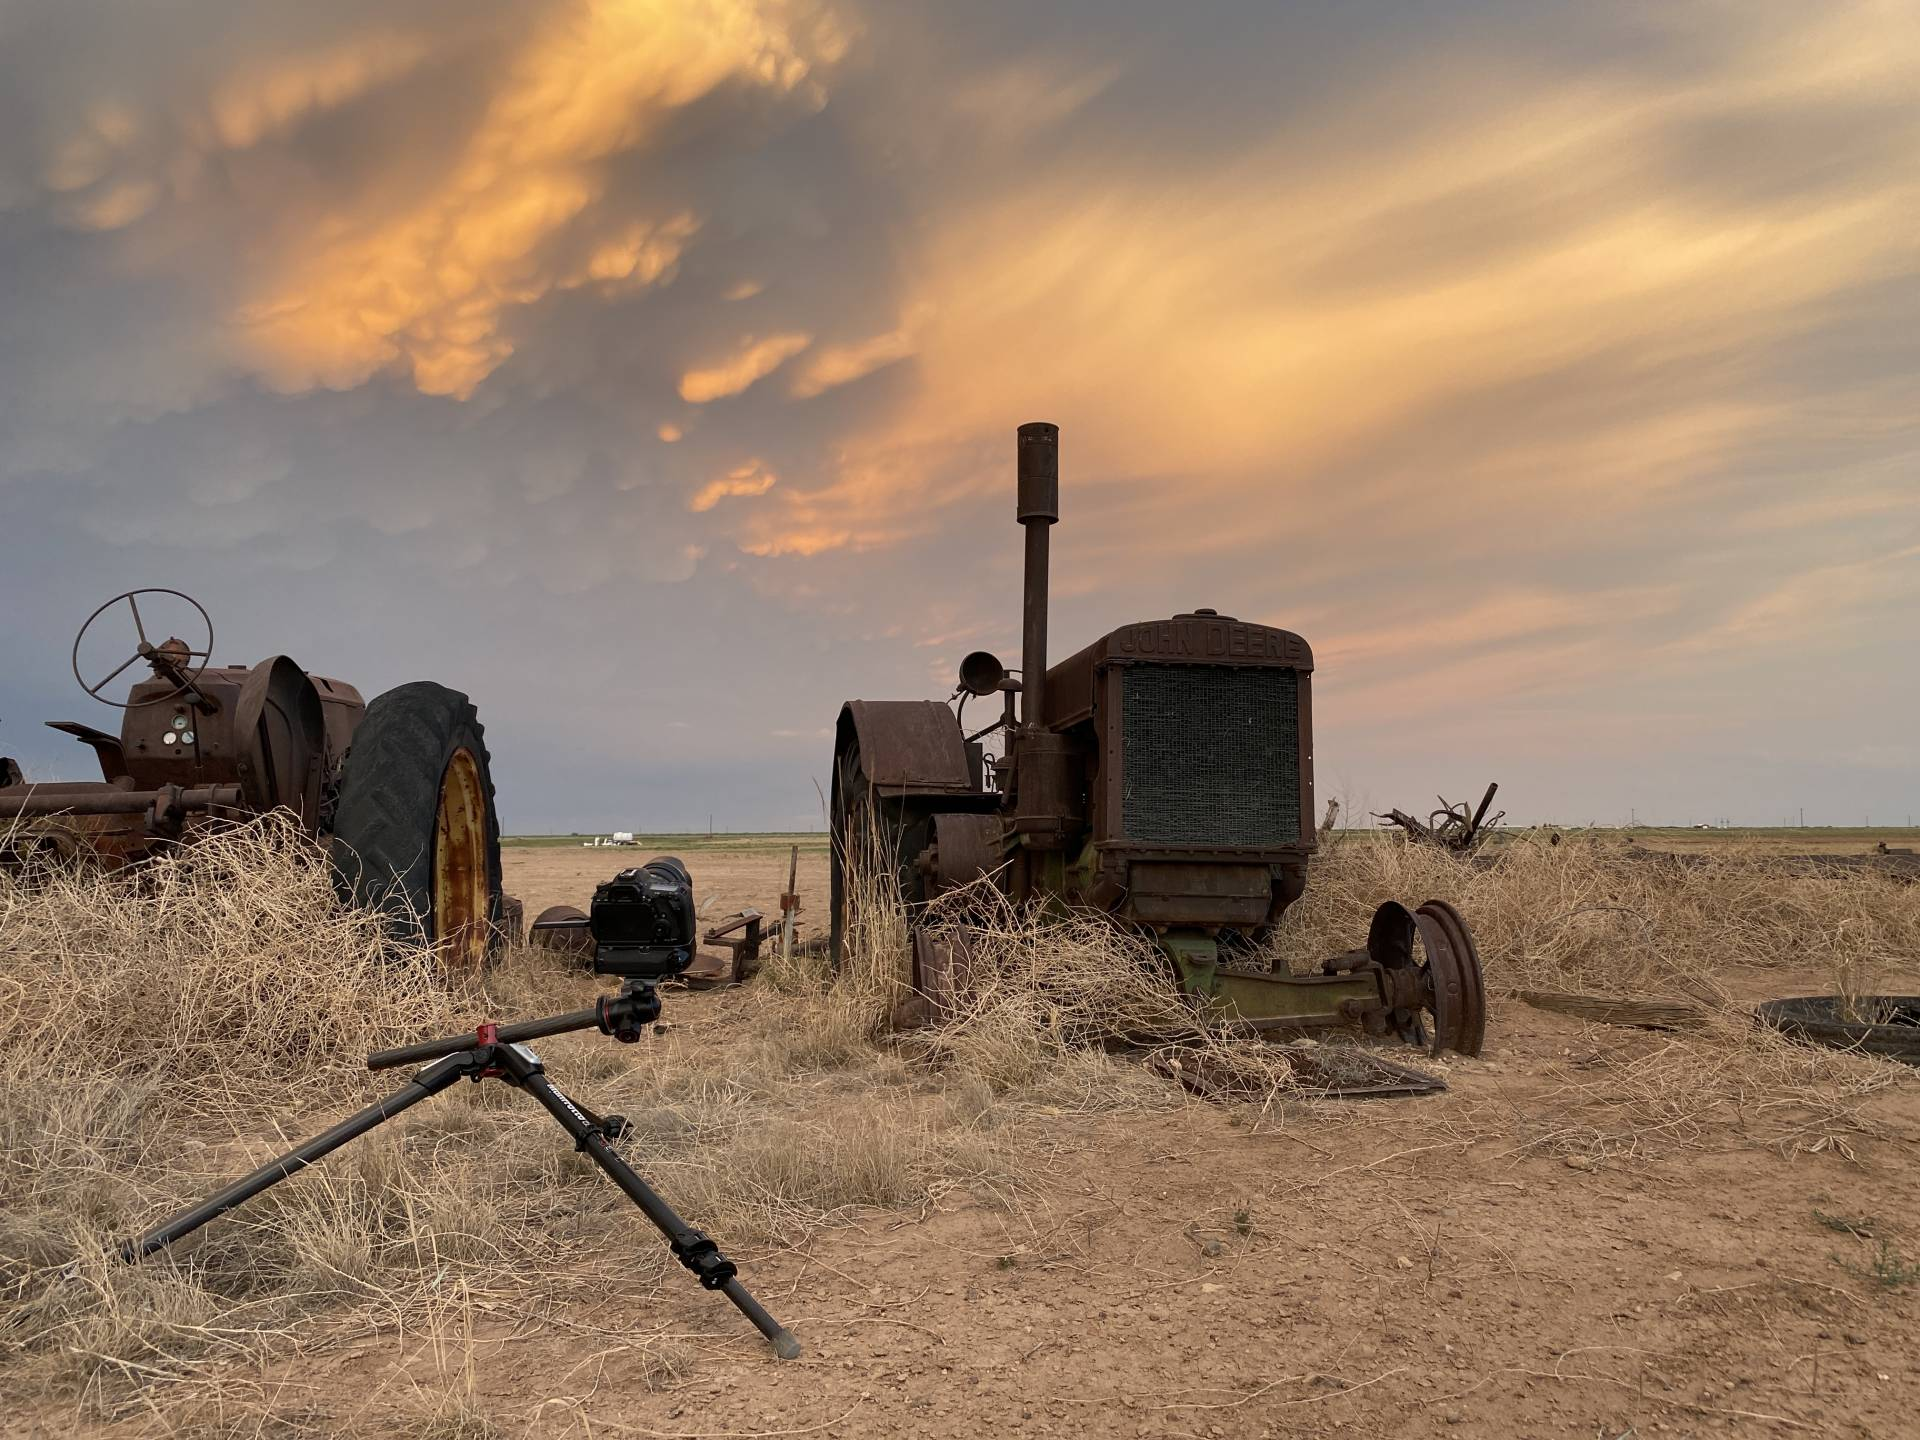 Wrapping up for the day with some sunset anvil tractors.